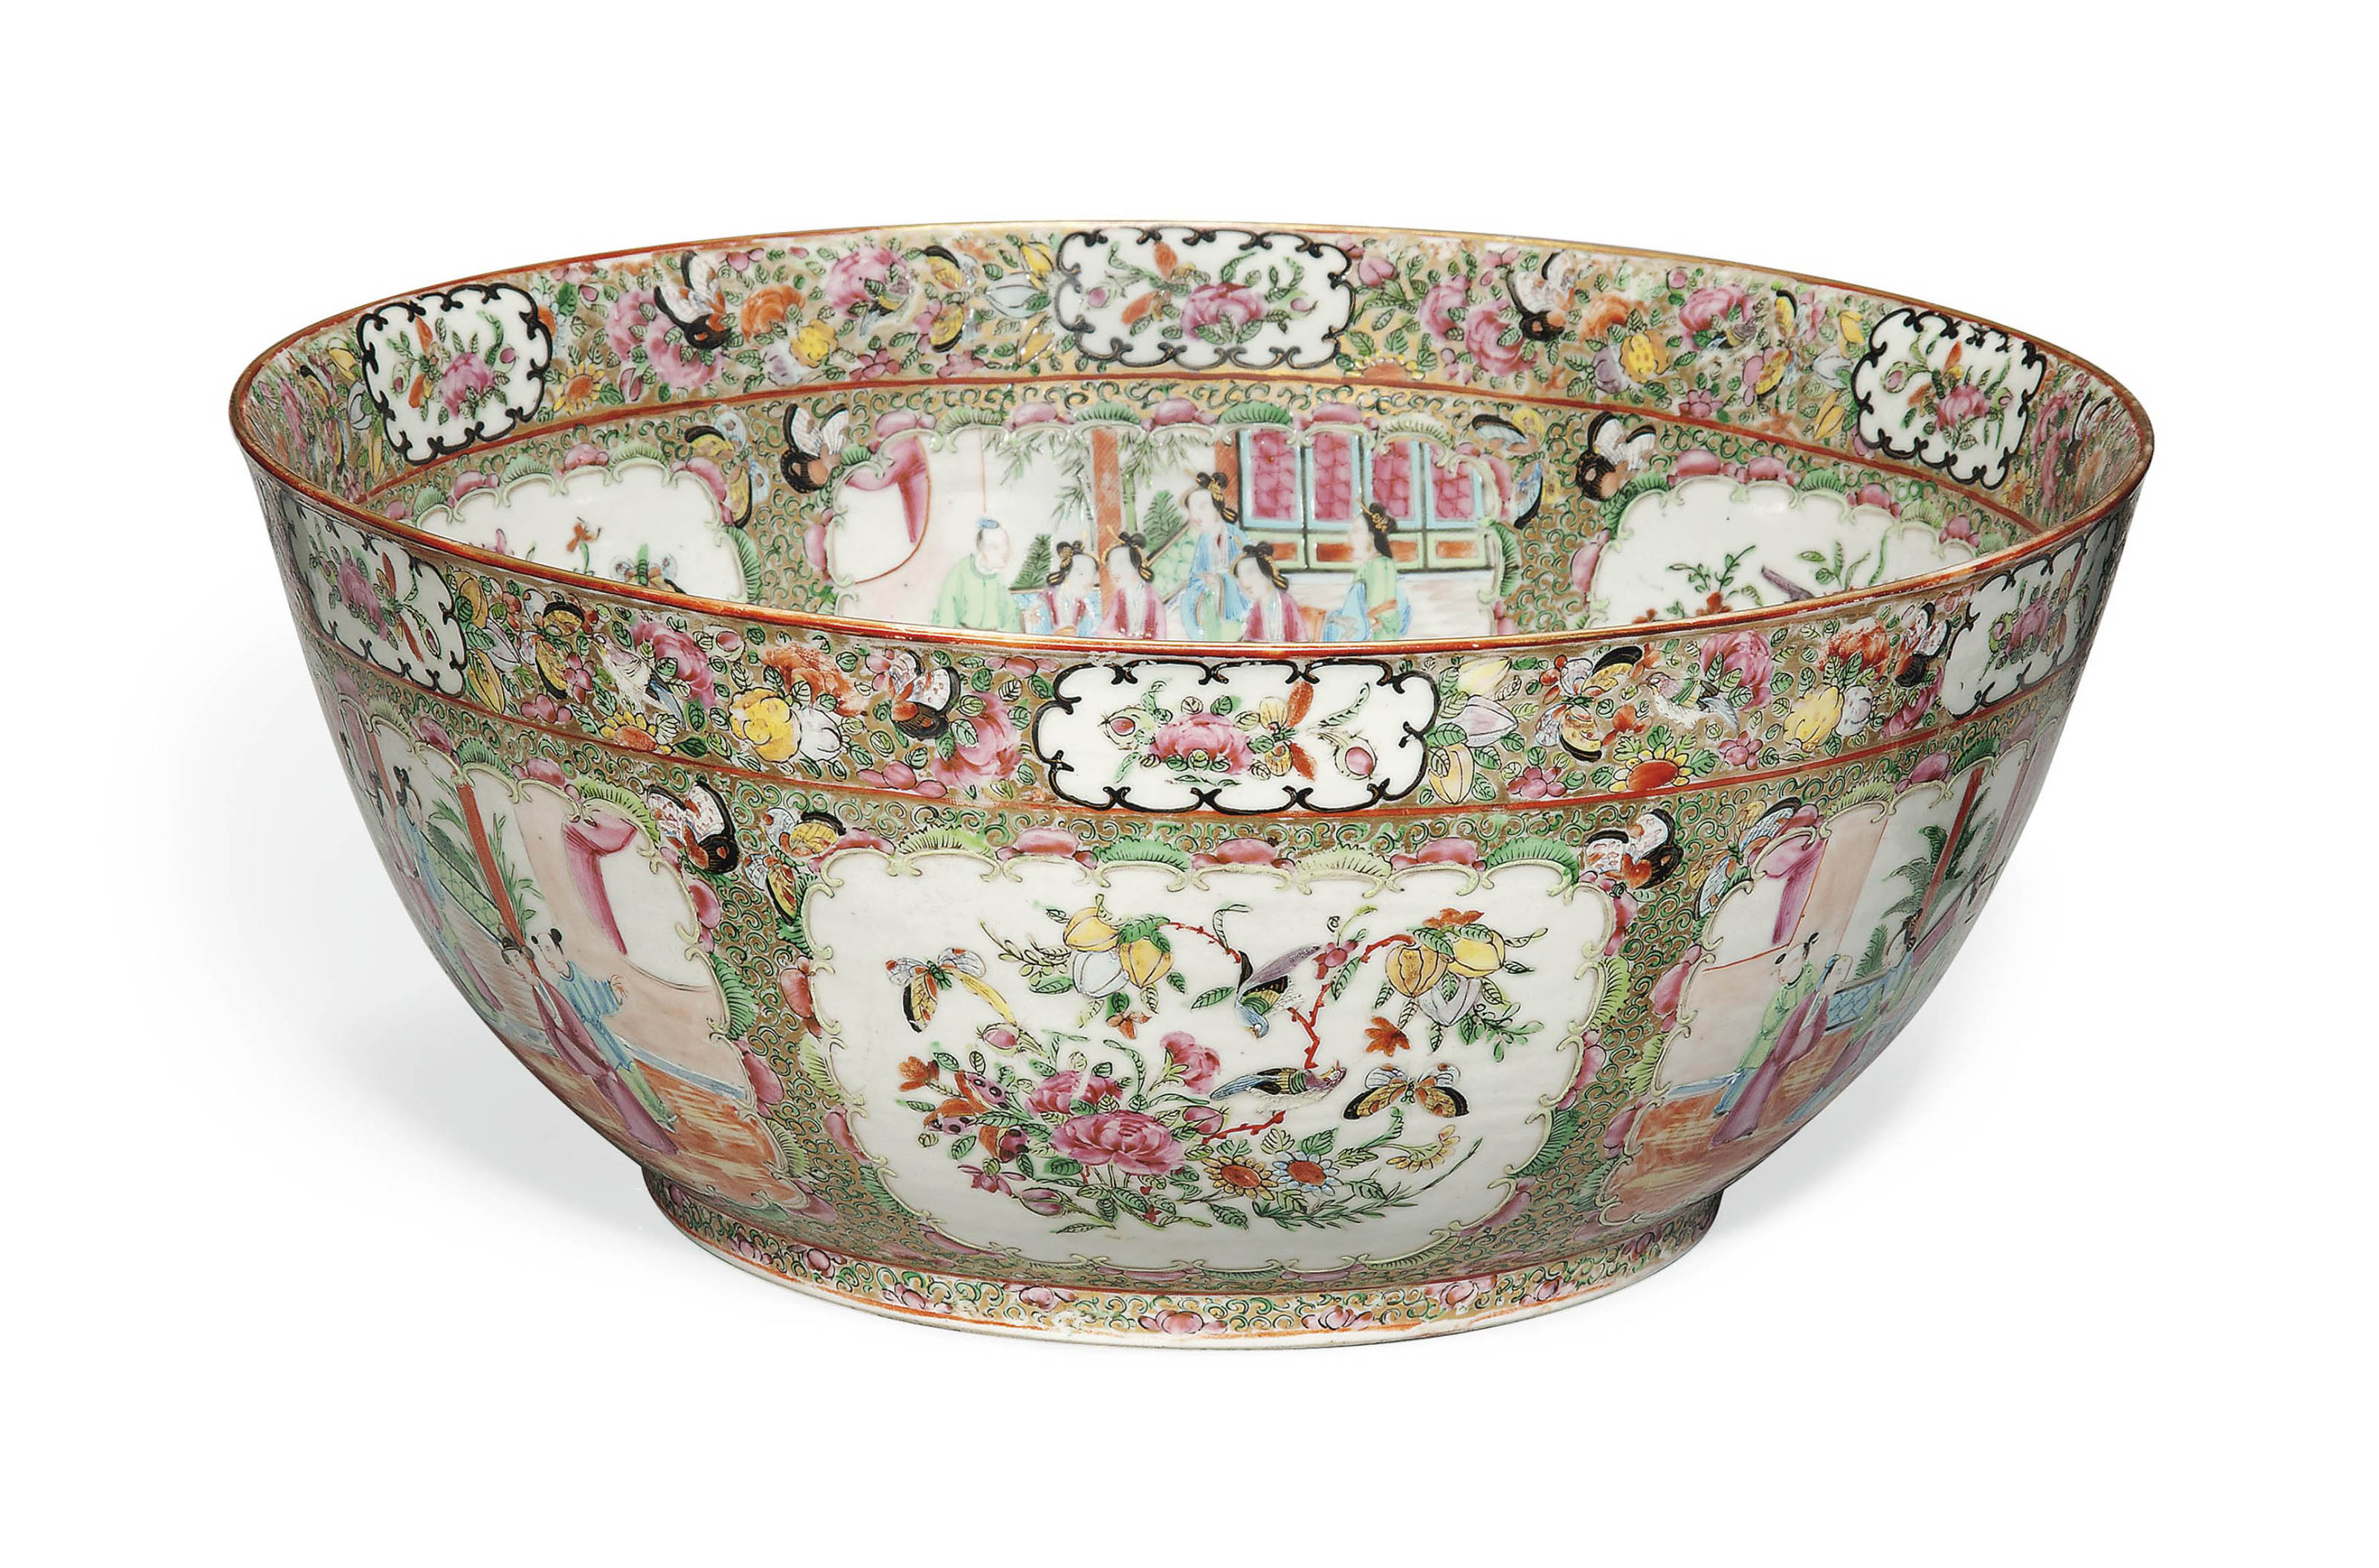 A LARGE CANTONESE FAMILLE ROSE BOWL